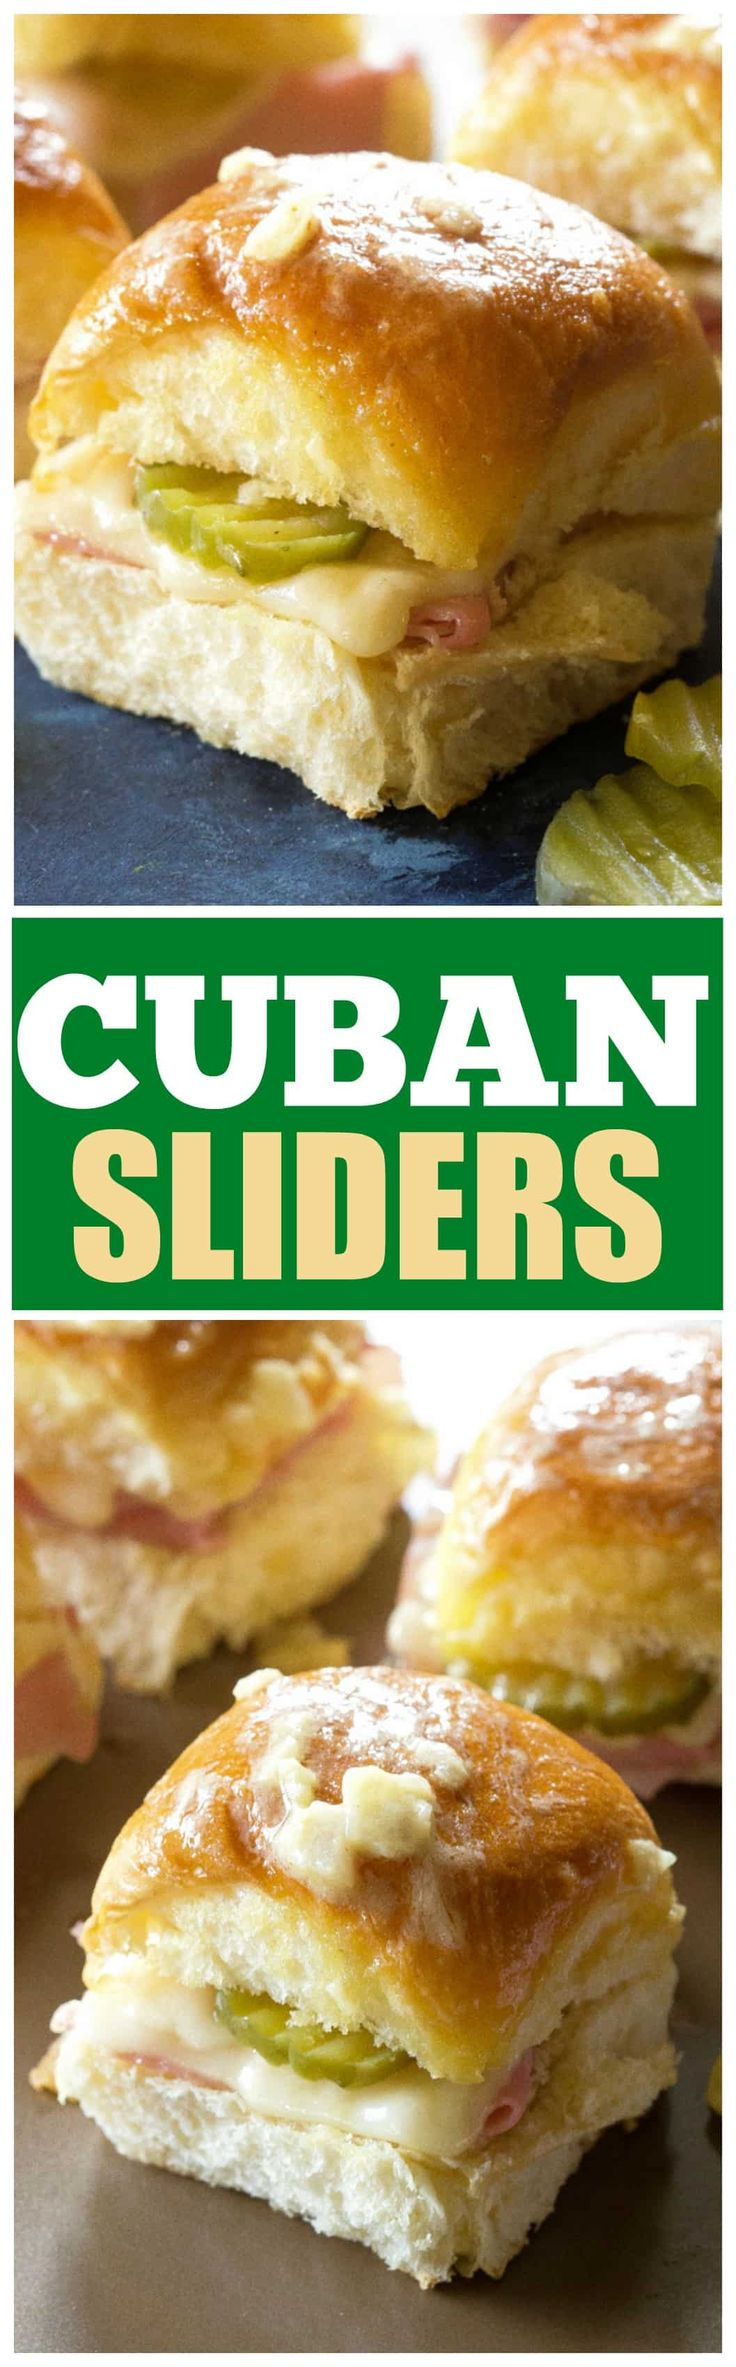 Cuban Sliders - ham, Swiss, pickles, and a mustard glaze makes these Cuban sliders a great appetizer for any party. the-girl-who-ate-everything.com